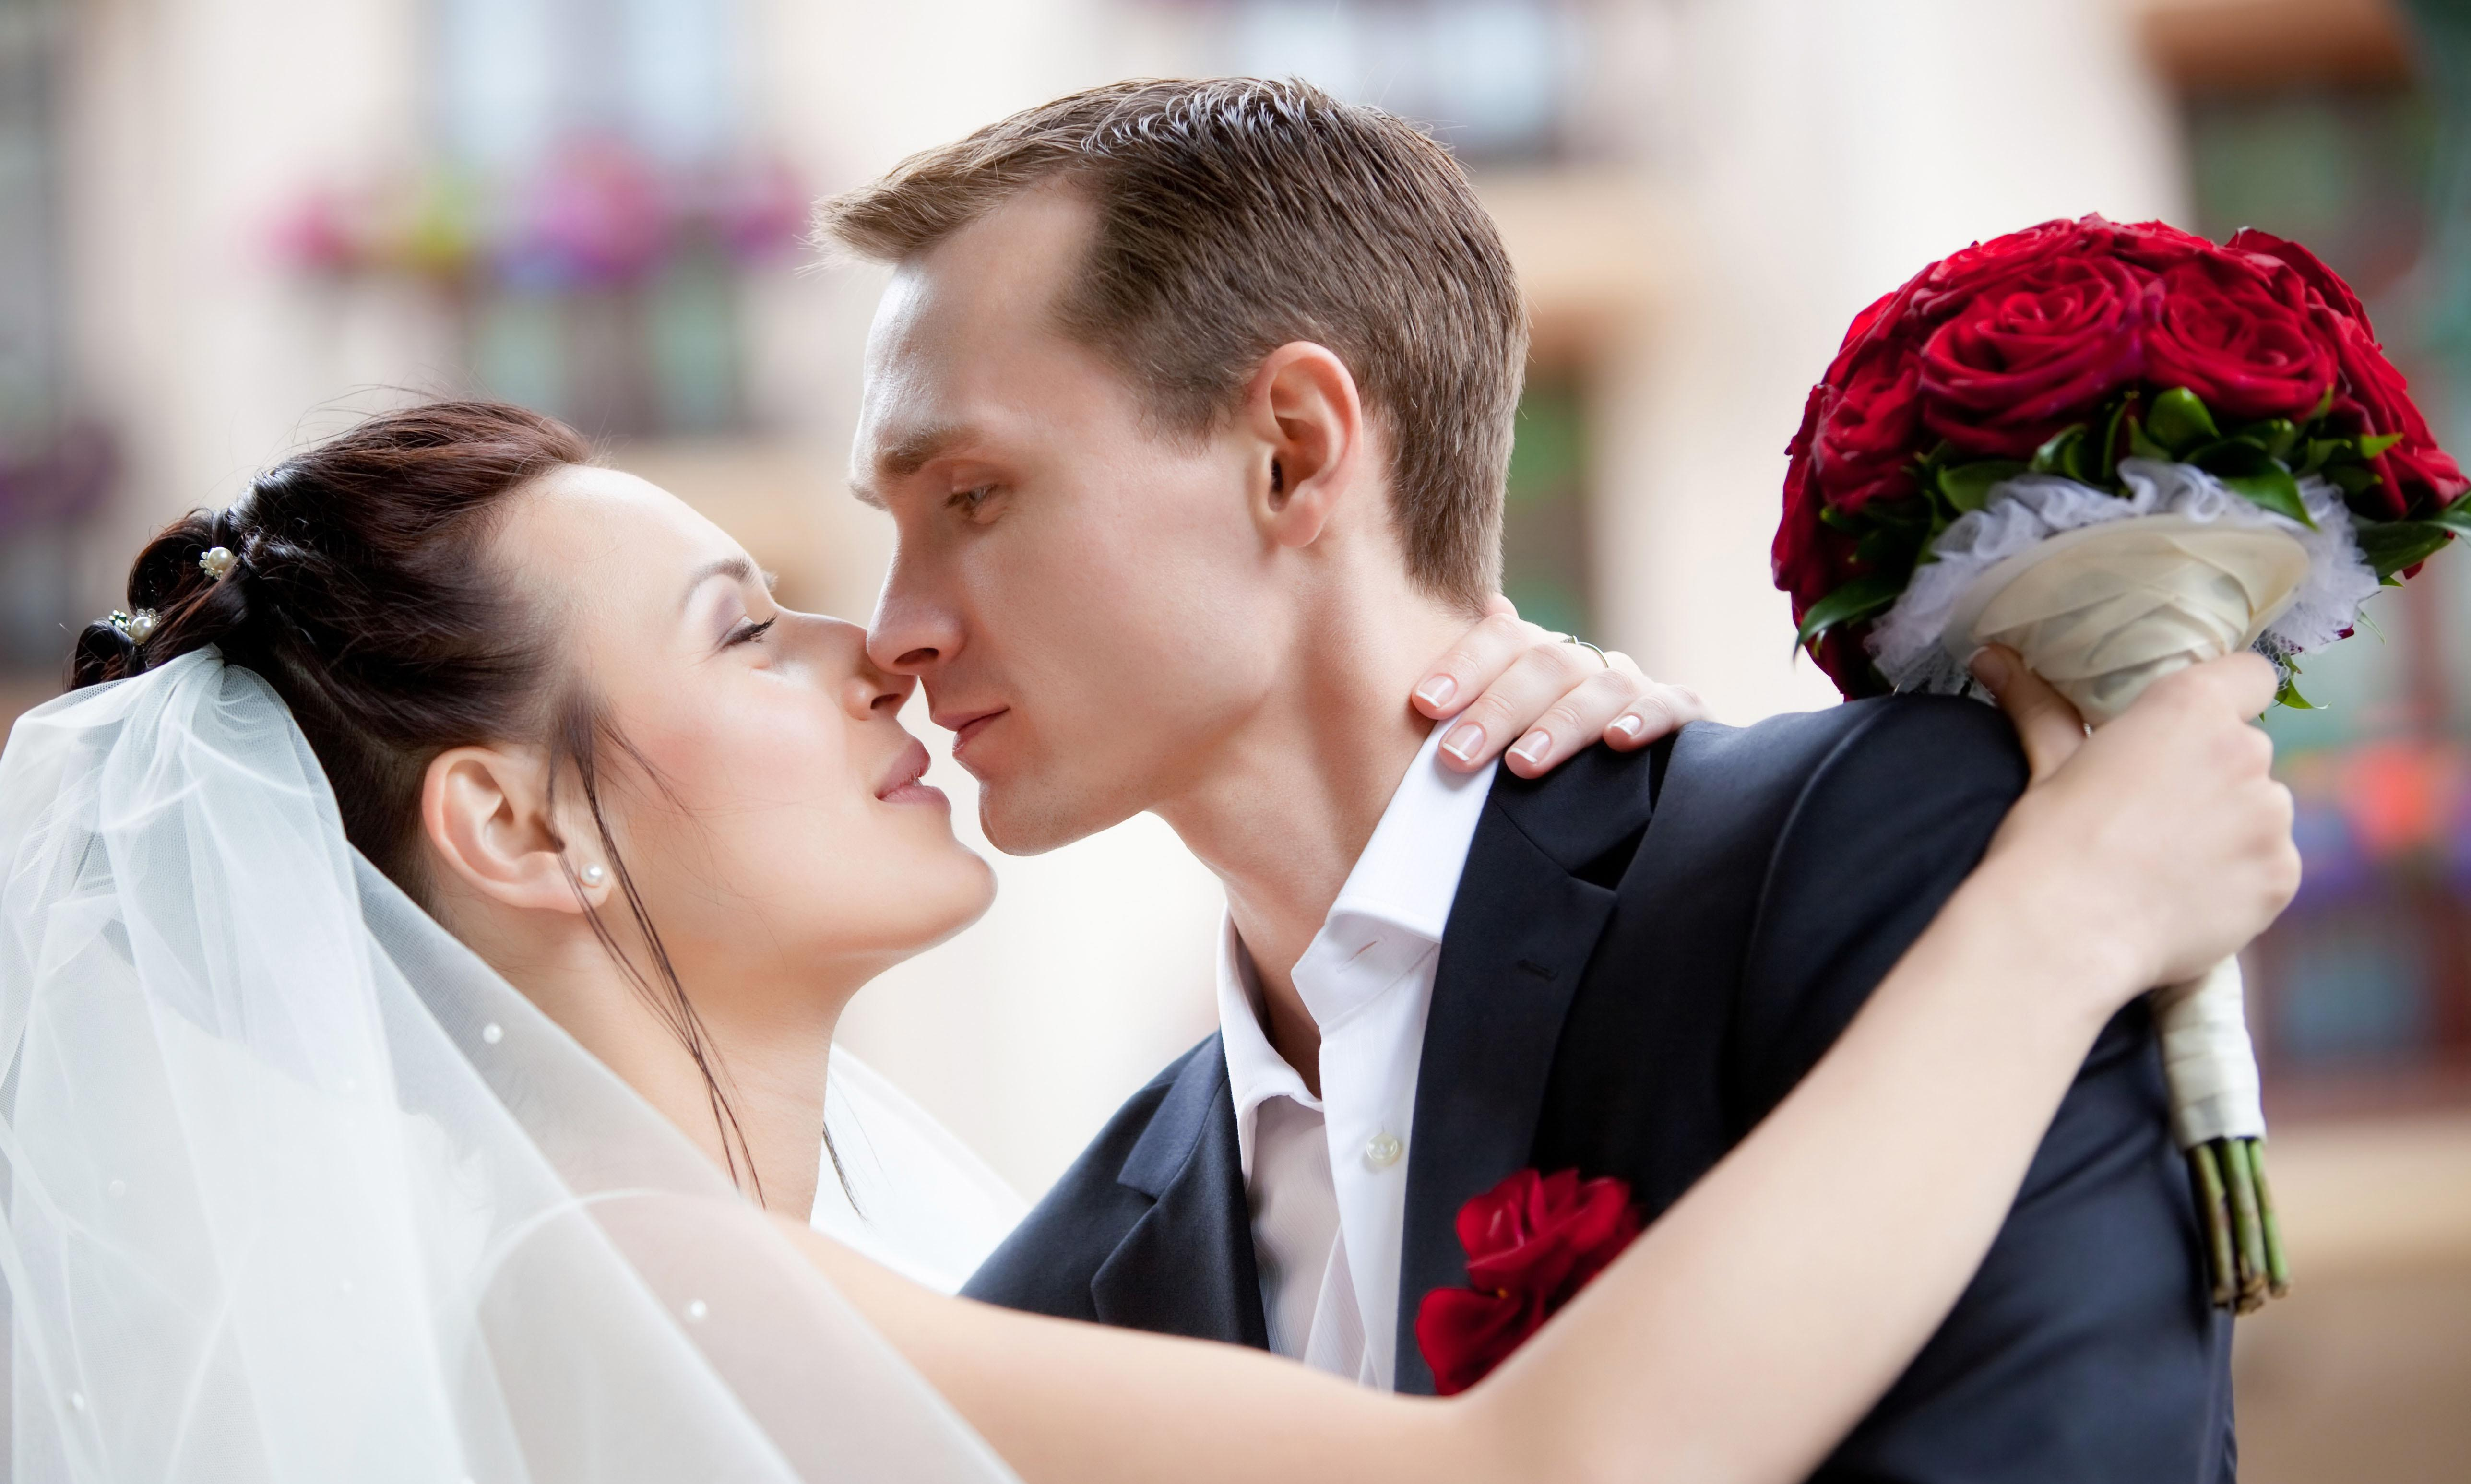 Marriage is a leap of faith and a journey, not a statistical strategy game